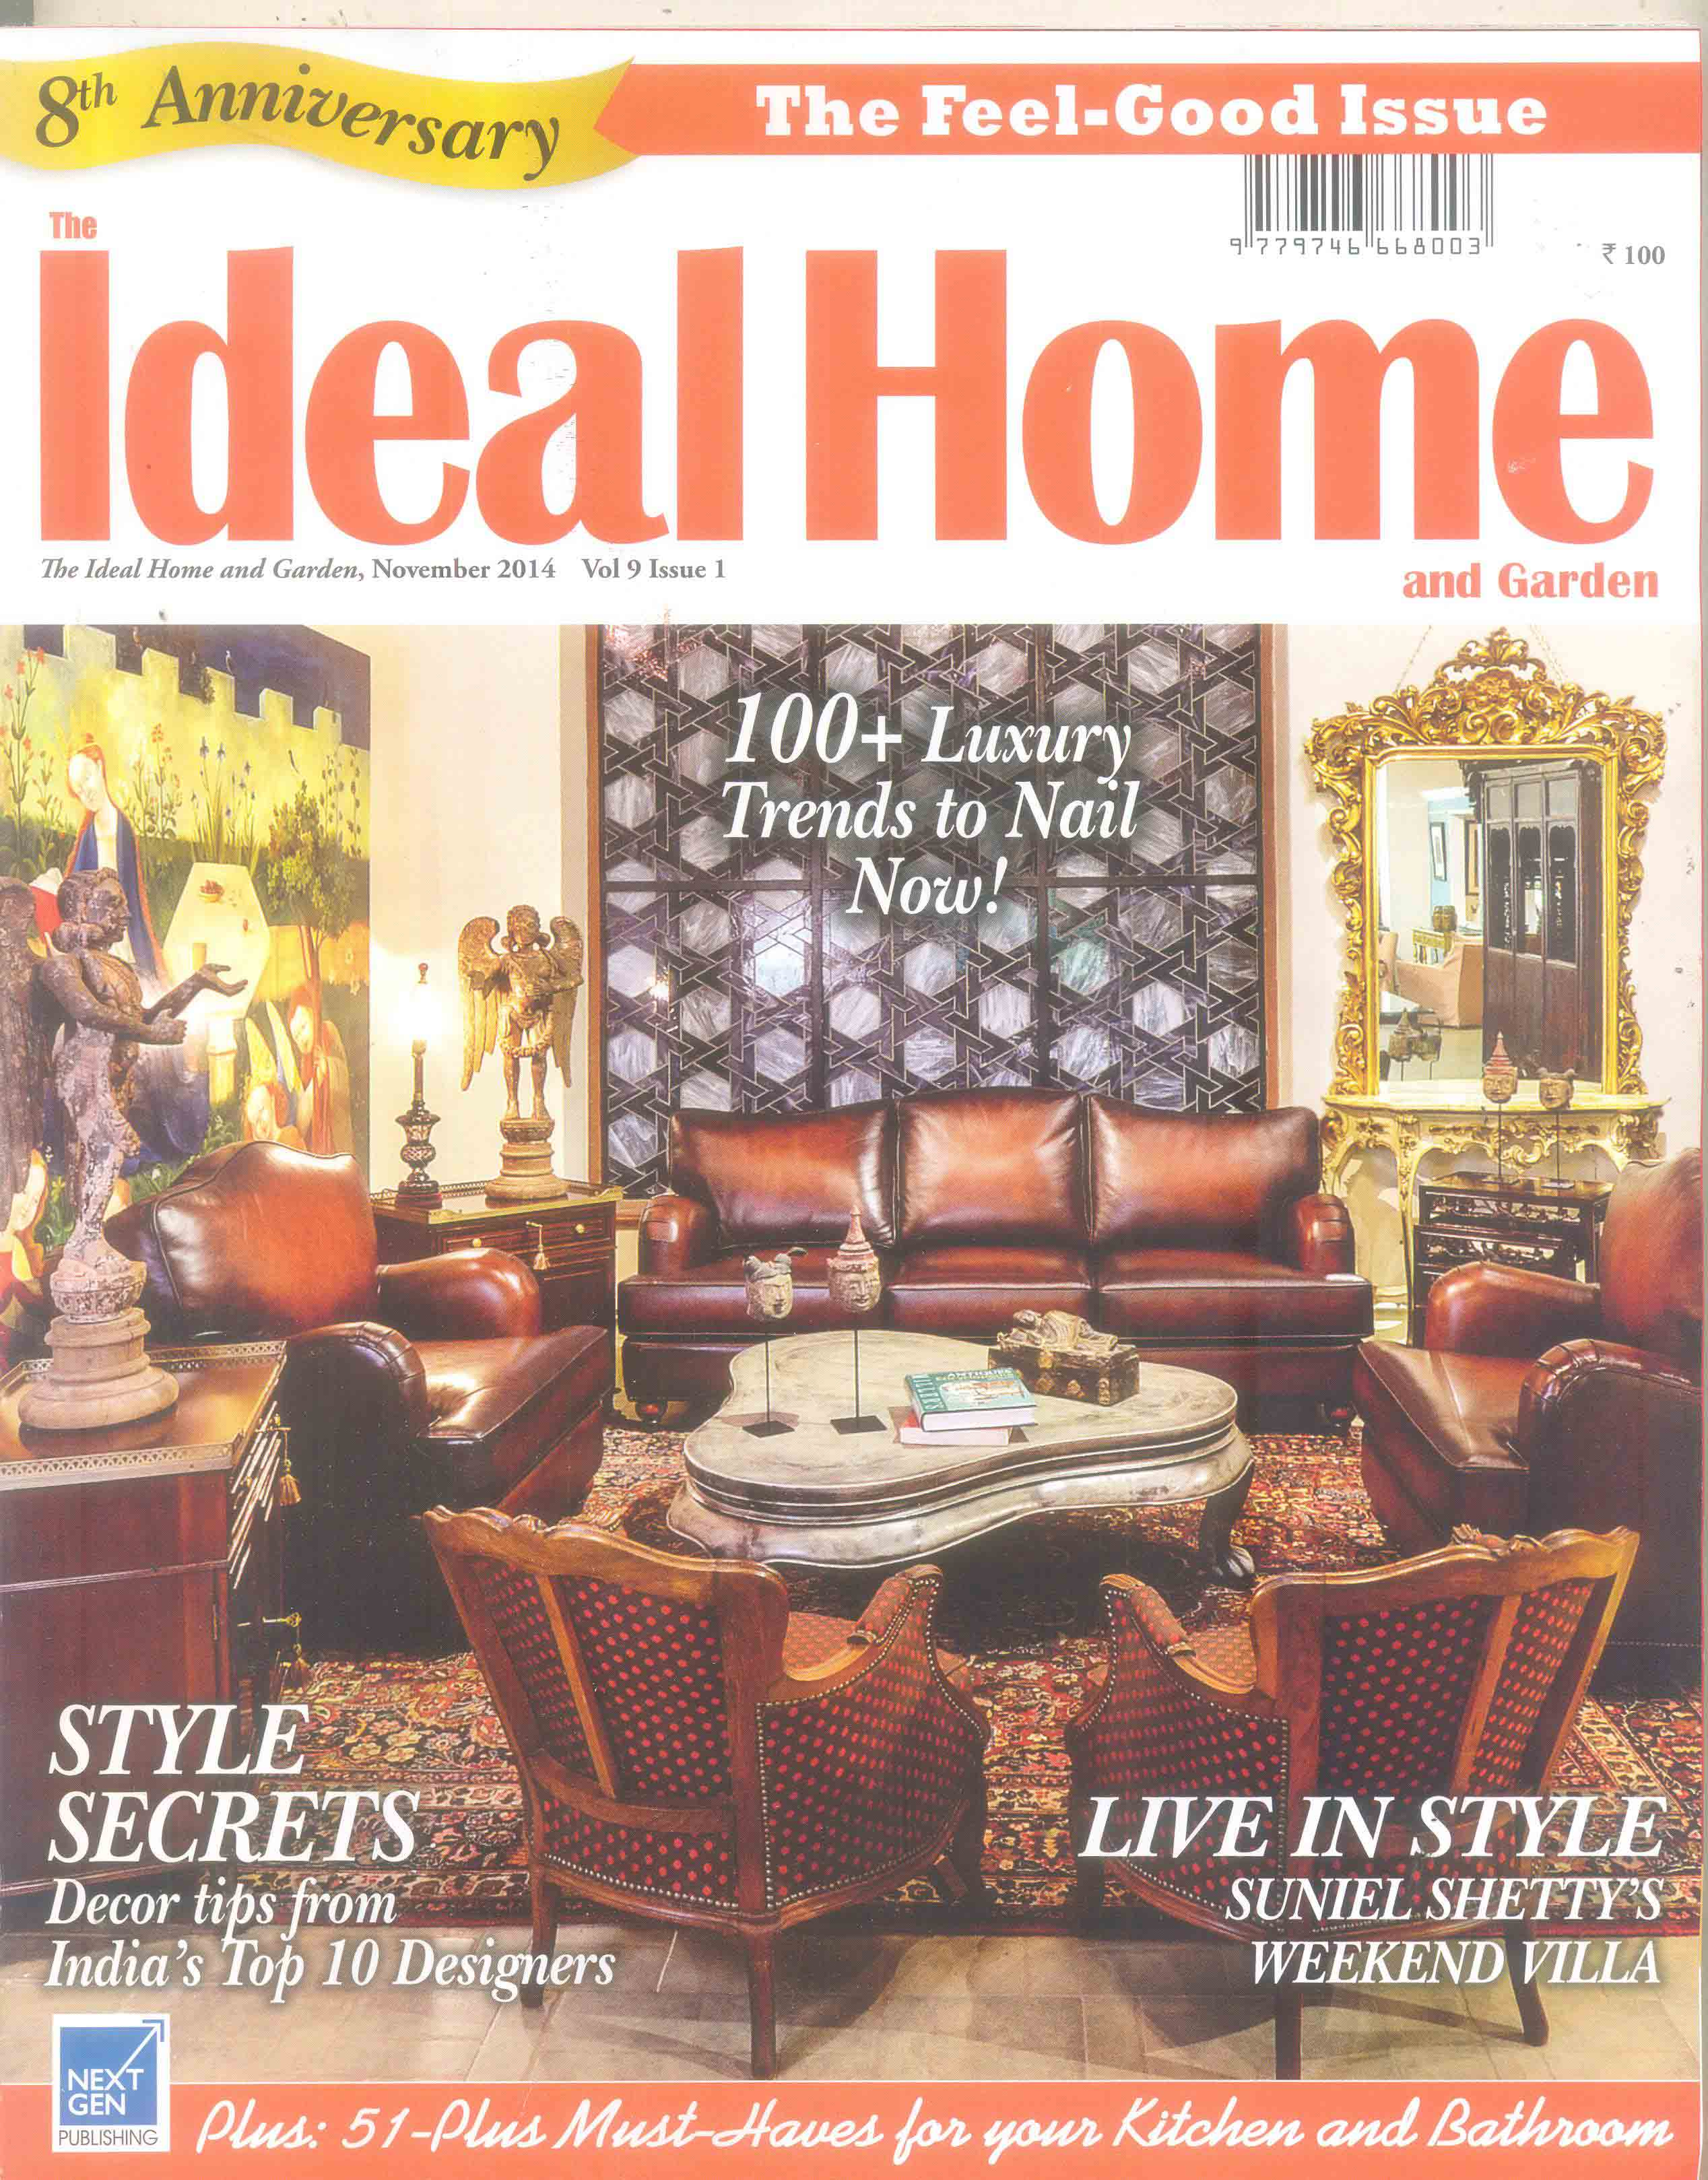 The Ideal Home and Garden – PortsideCafé on keystone home design, nelson home design, byron home design, howes home design, jefferson home design, english home design, kingston home design, high-tech home design, group home design, perry home design, white home design, idea home design, crawford home design, hamilton home design, morgan home design, good home design, gray home design, exterior home house design, lexington home design, universal home design,